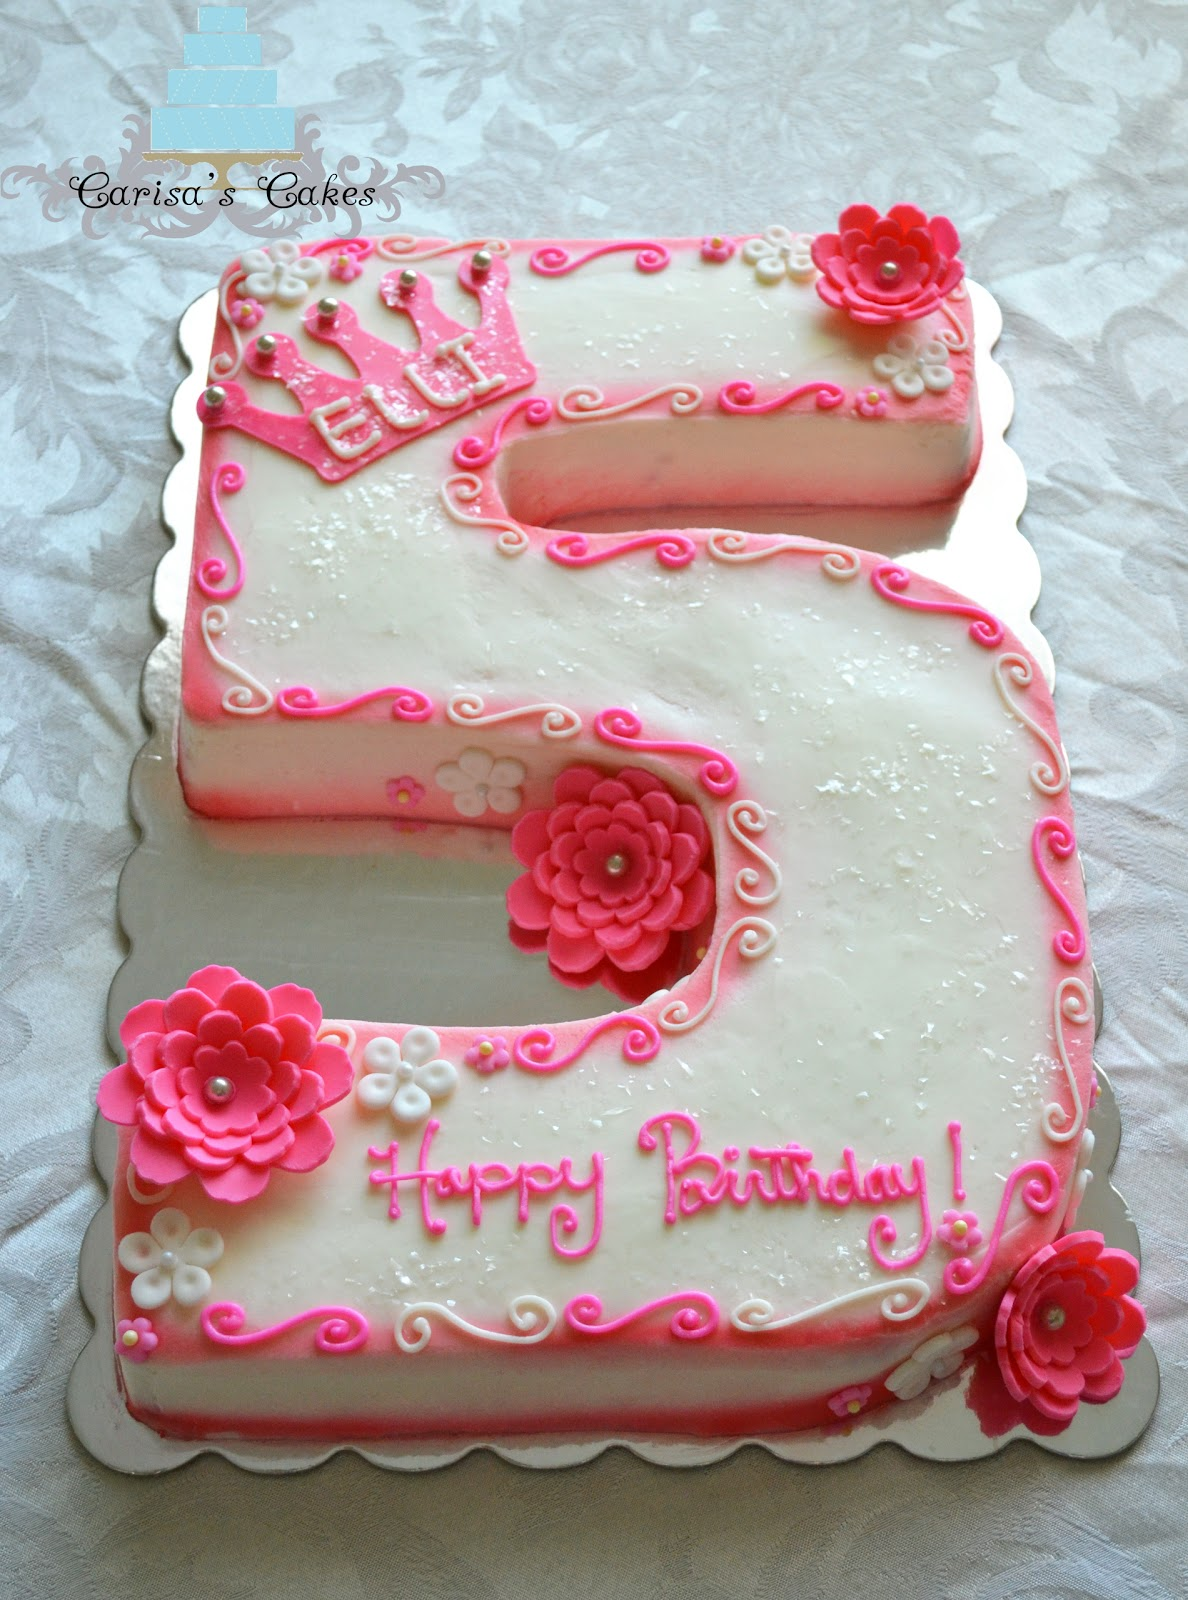 Birthday Cake Images Pic : Carisa s Cakes: 5 Shaped Birthday Cake